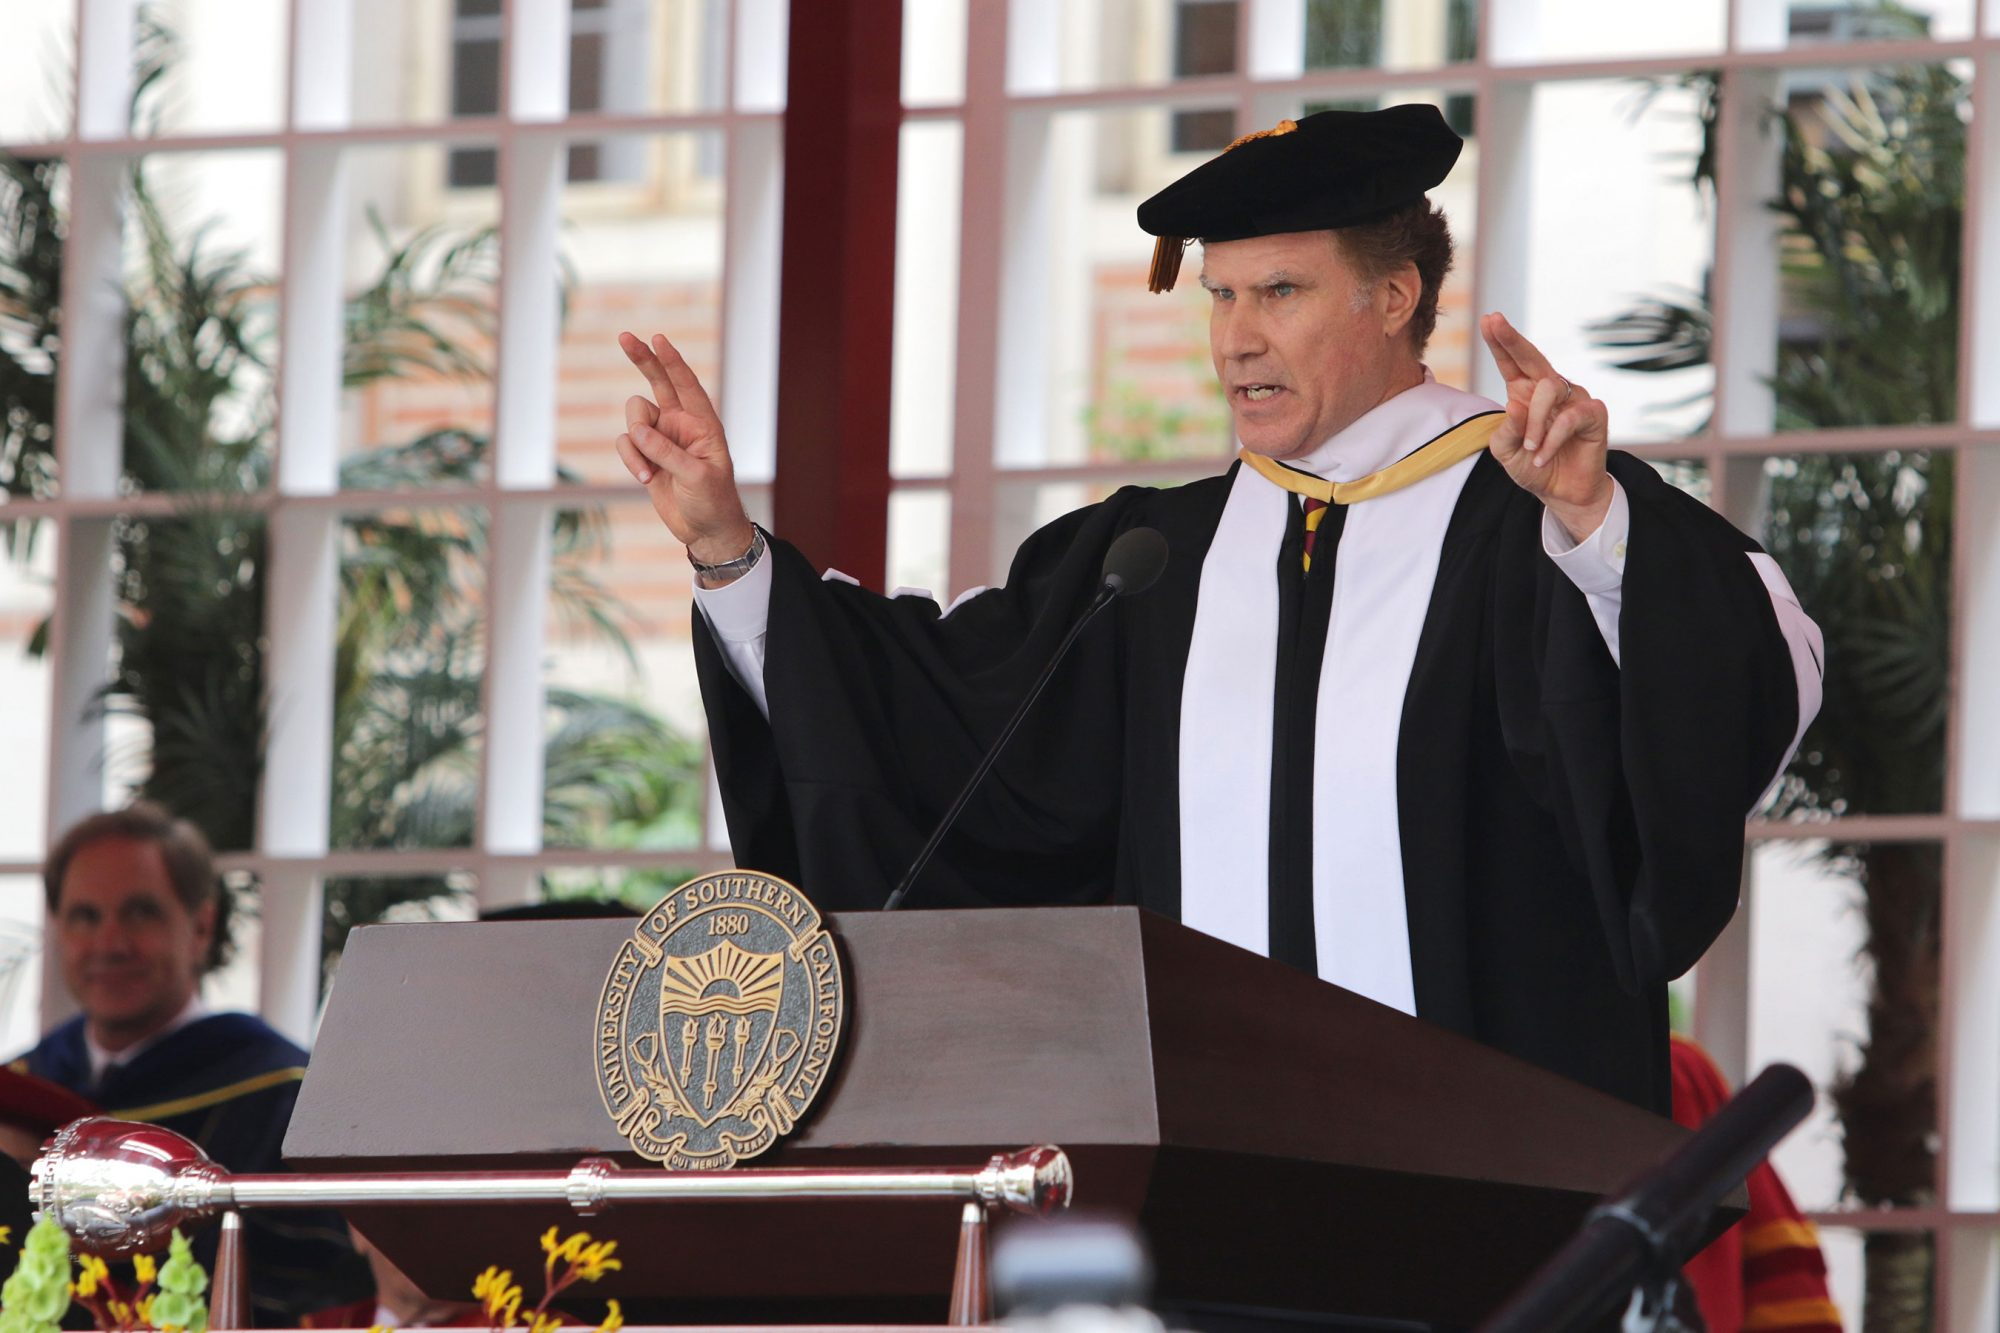 University Of Southern California 134th Commencement Ceremonies